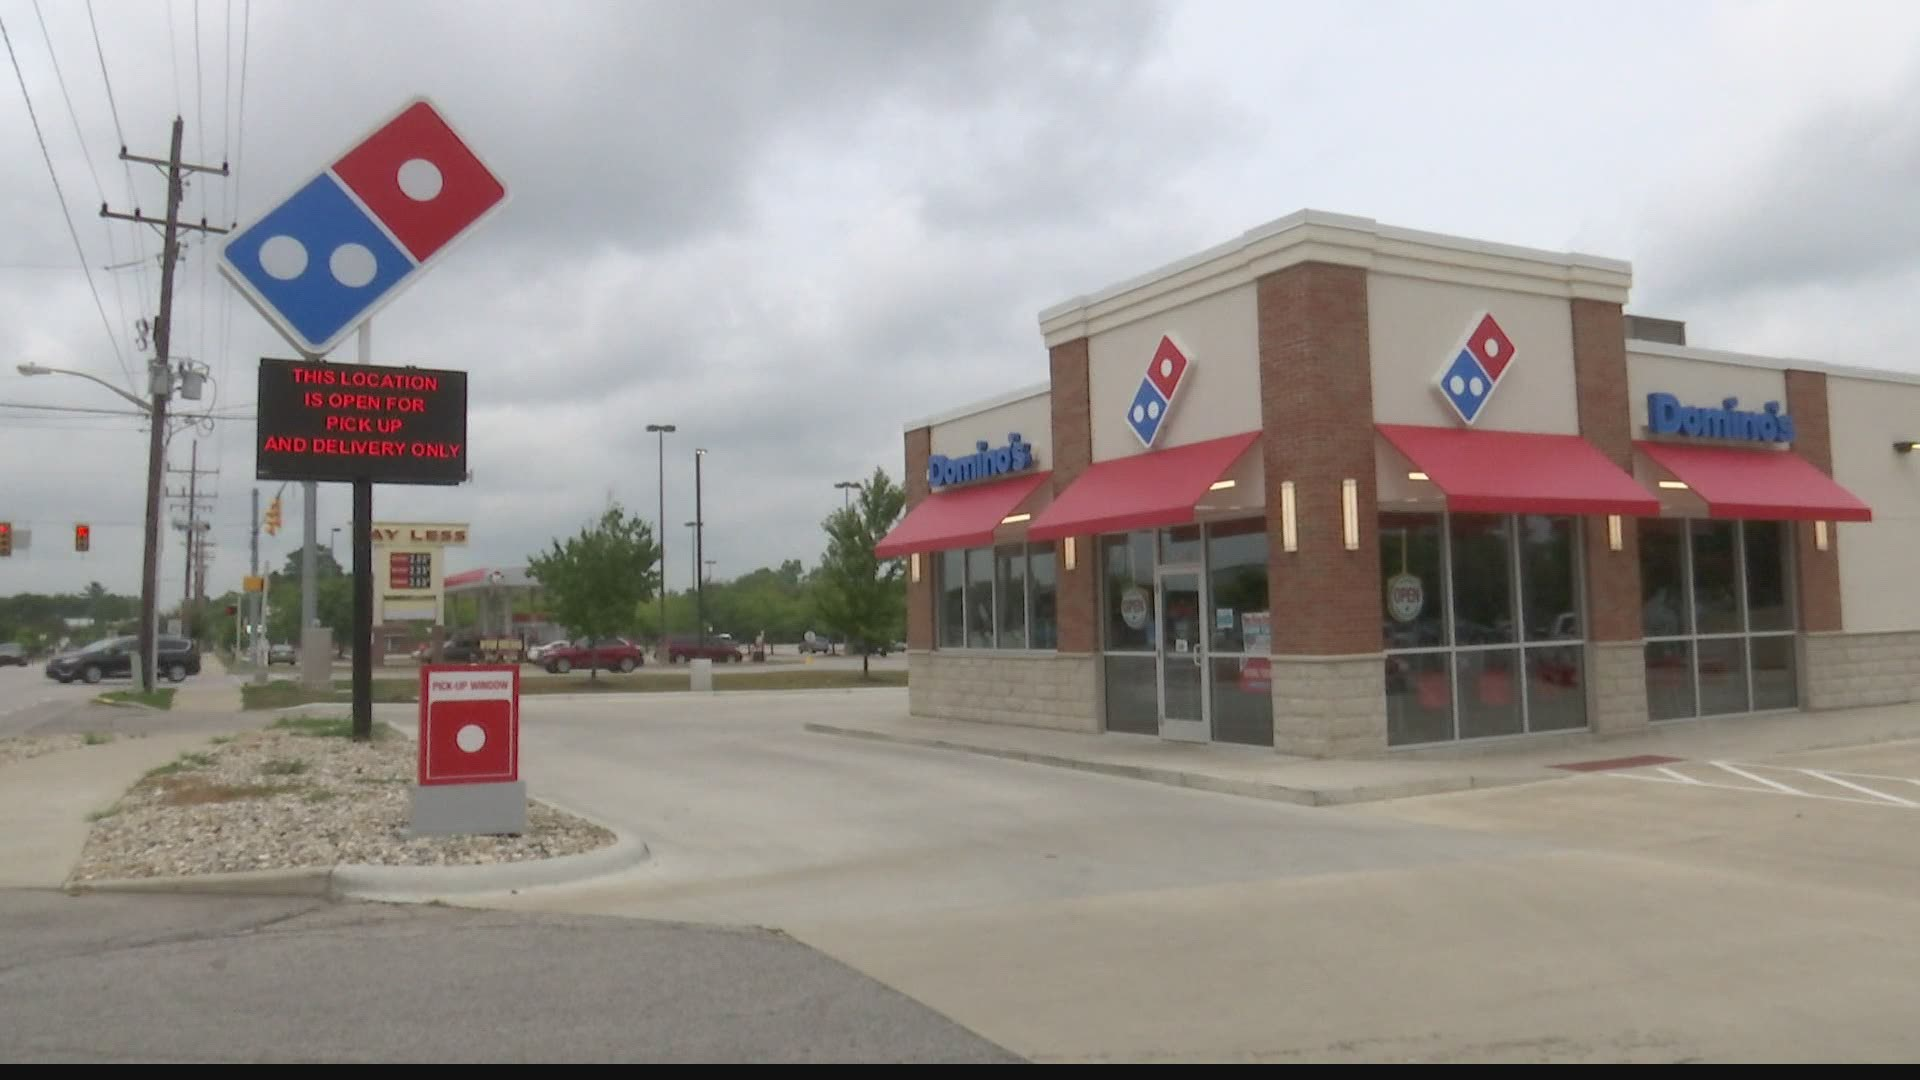 14-year-old girls accused of carjacking pizza delivery